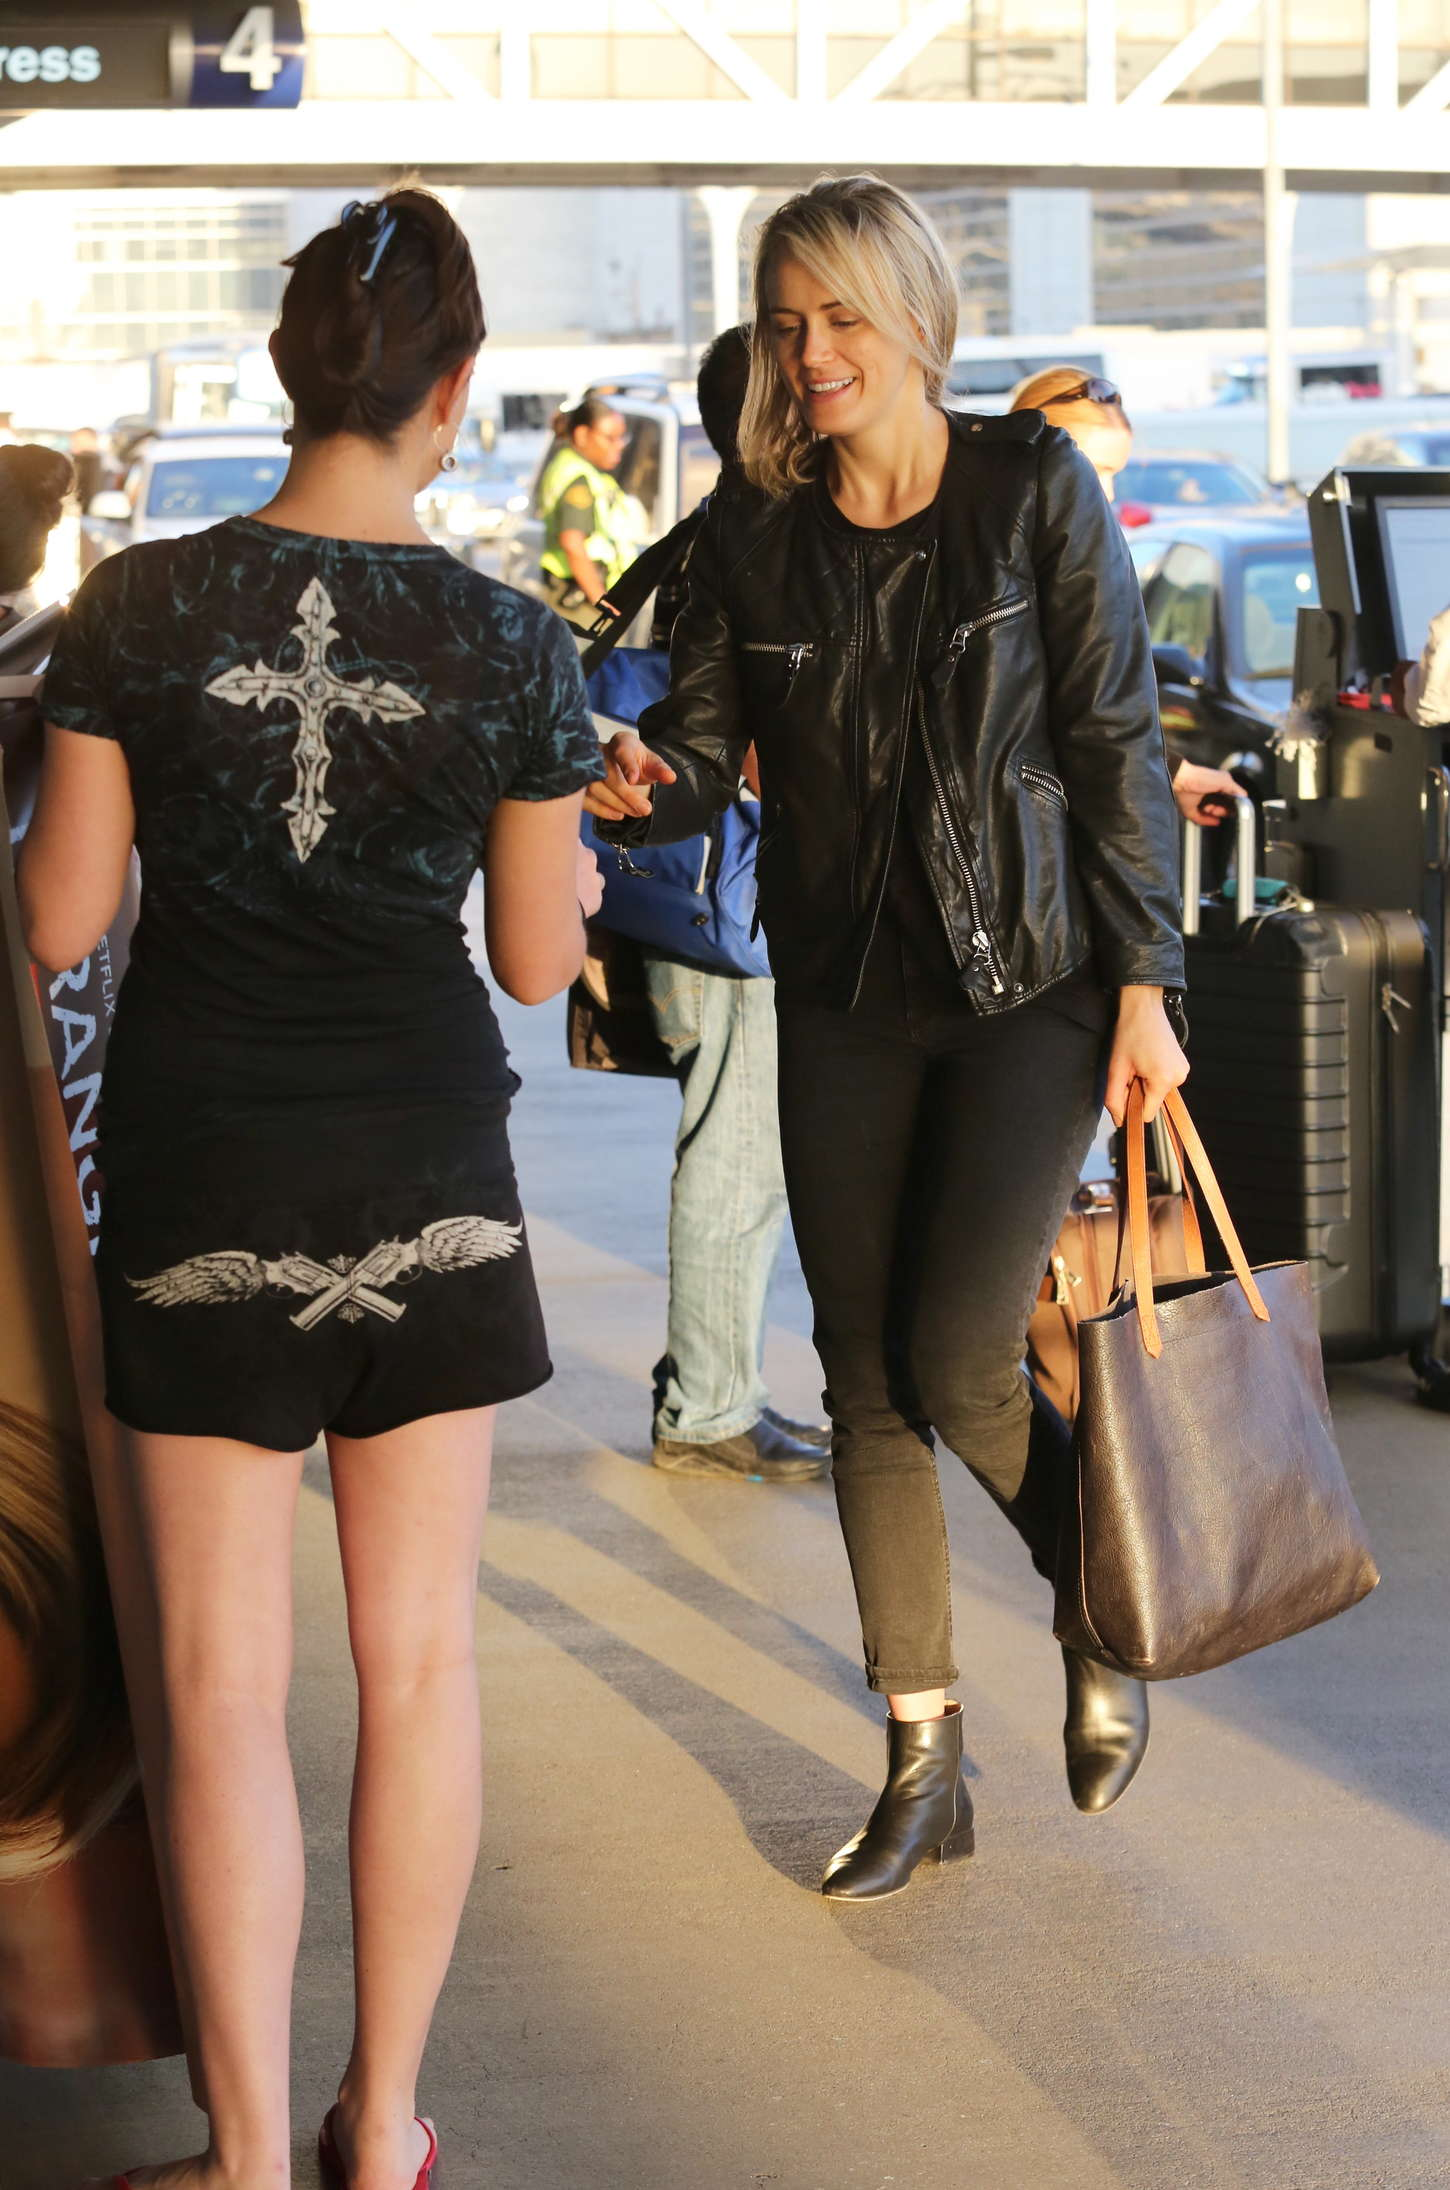 Taylor Schilling in Tight Pants -10 | GotCelebTaylor Schilling Argo